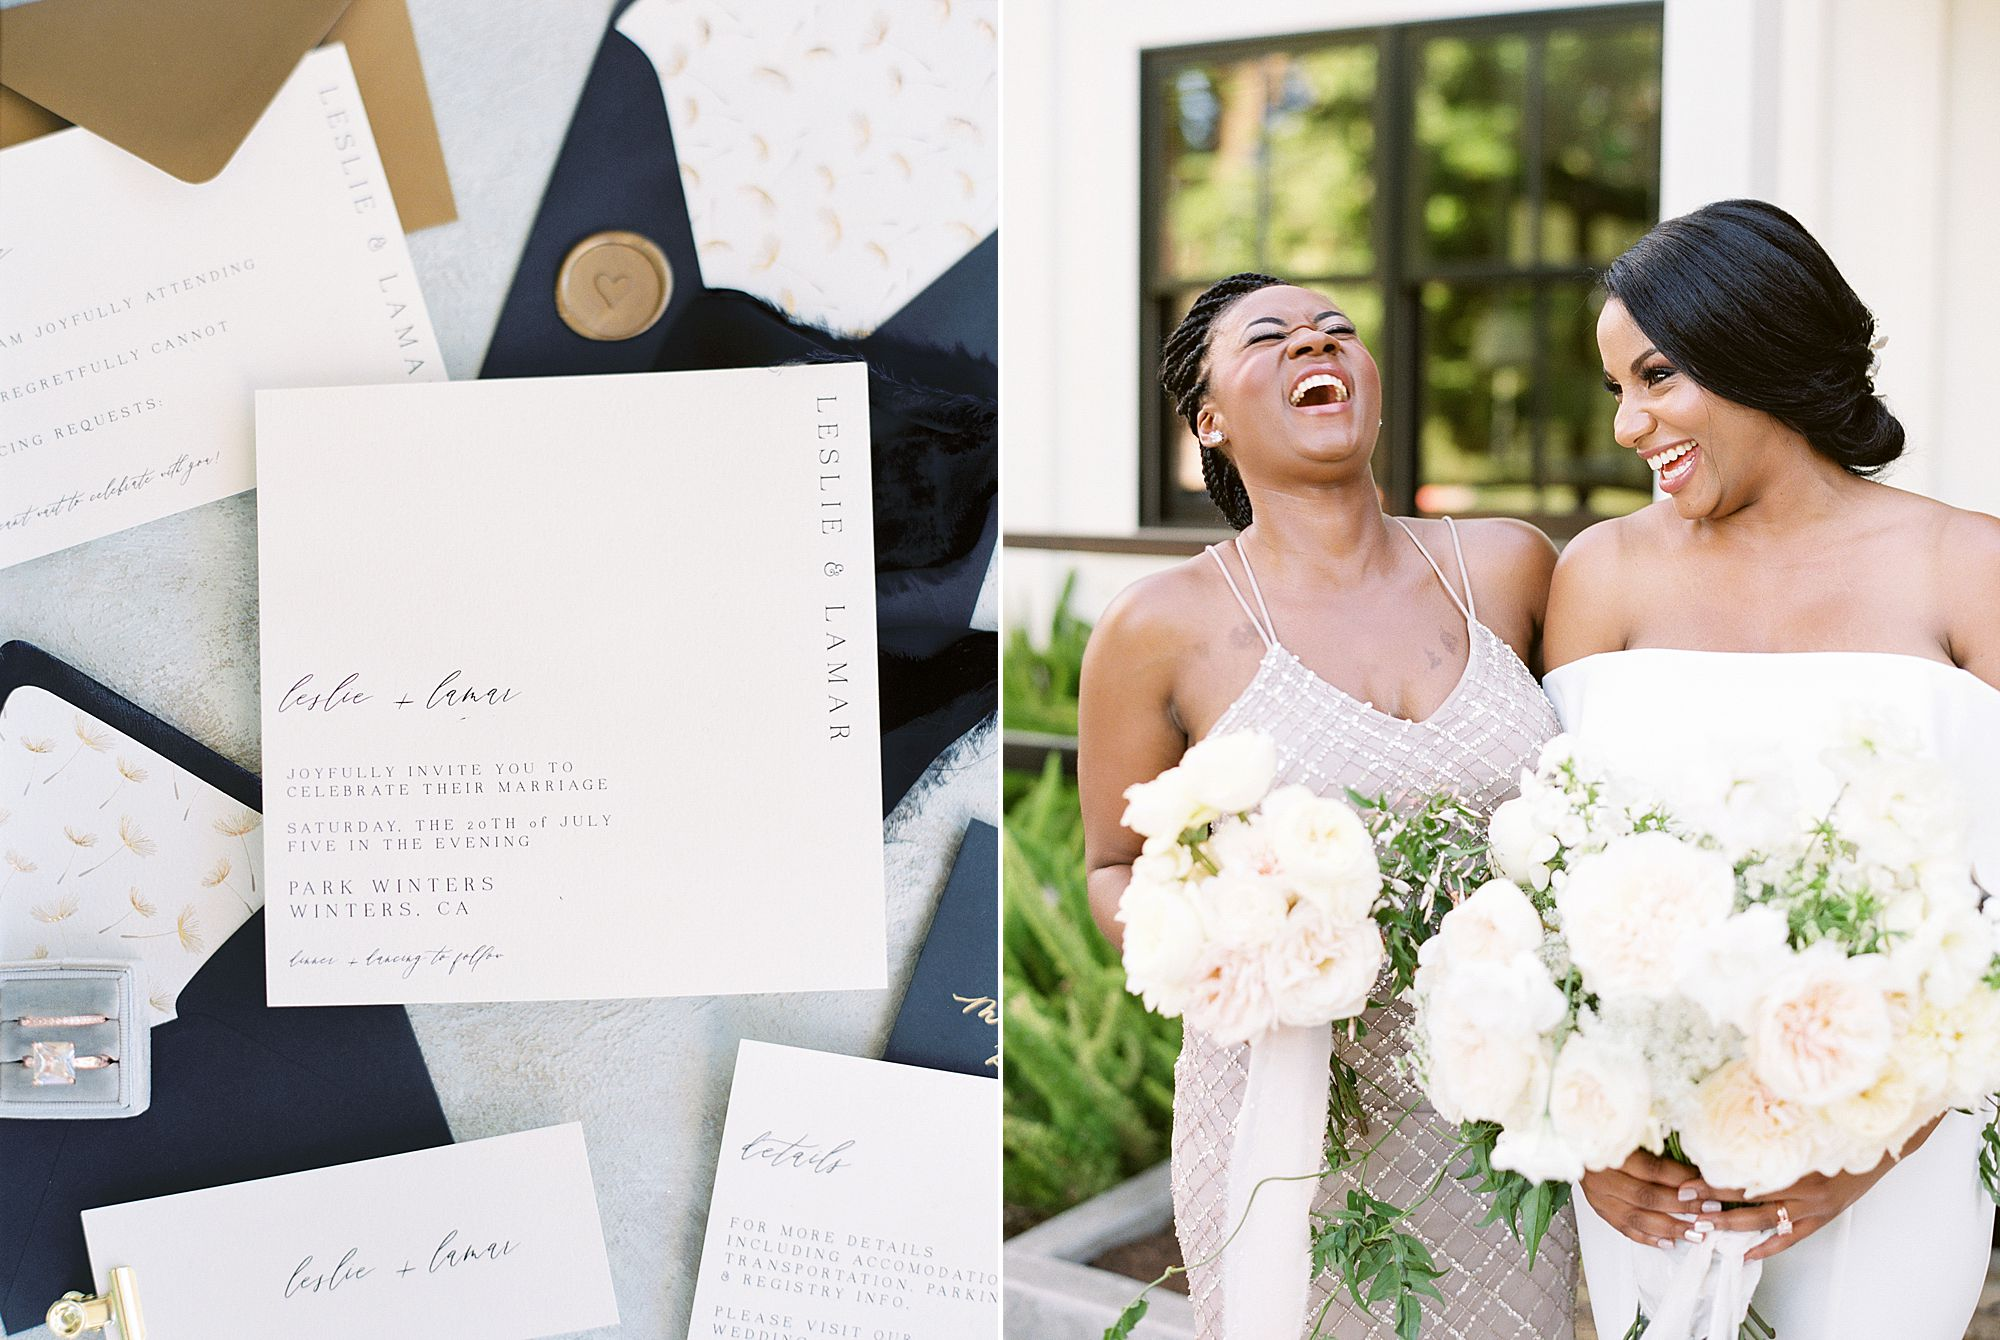 Park Winters Micro-Wedding Inspiration on Style Me Pretty - Stephanie Teague Events - Ashley Baumgartner - Park Winters Wedding - Black Tie Wedding - Micro-Wedding Sacramento Photographer_0019.jpg